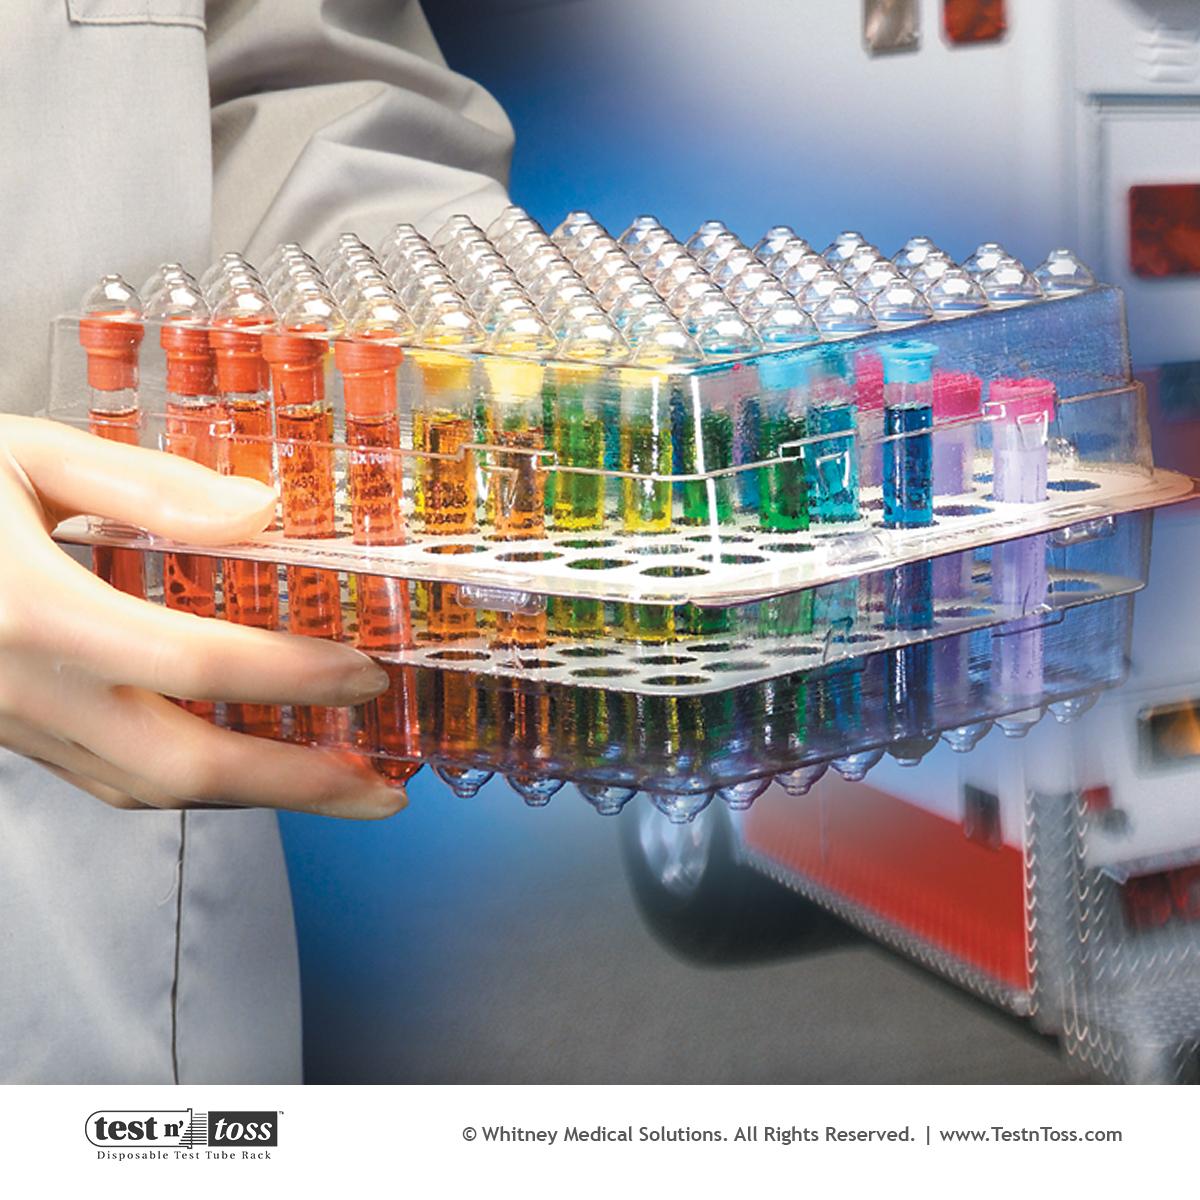 Test Tube Rack for Transport of Infectious Diagnostic Lab Specimens